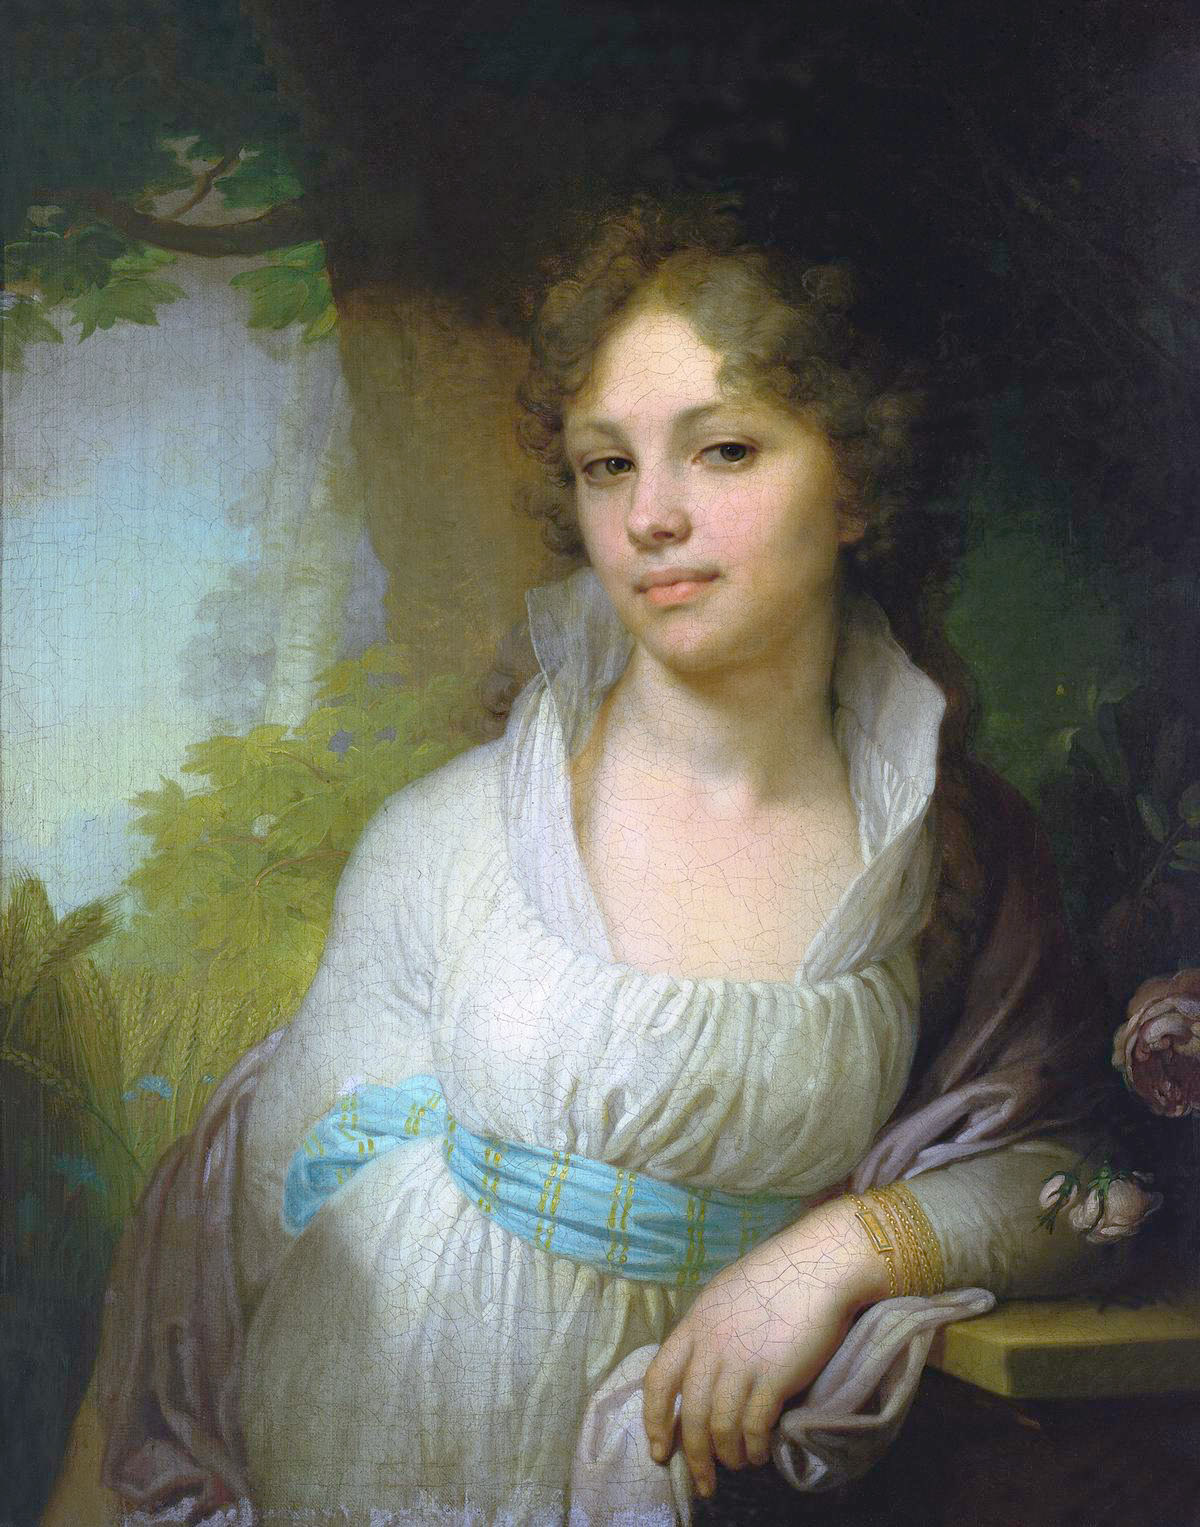 Vladimir Borovikovsky Portrait of Maria Ivanovna Lopukhina, oil on canvas (1797)